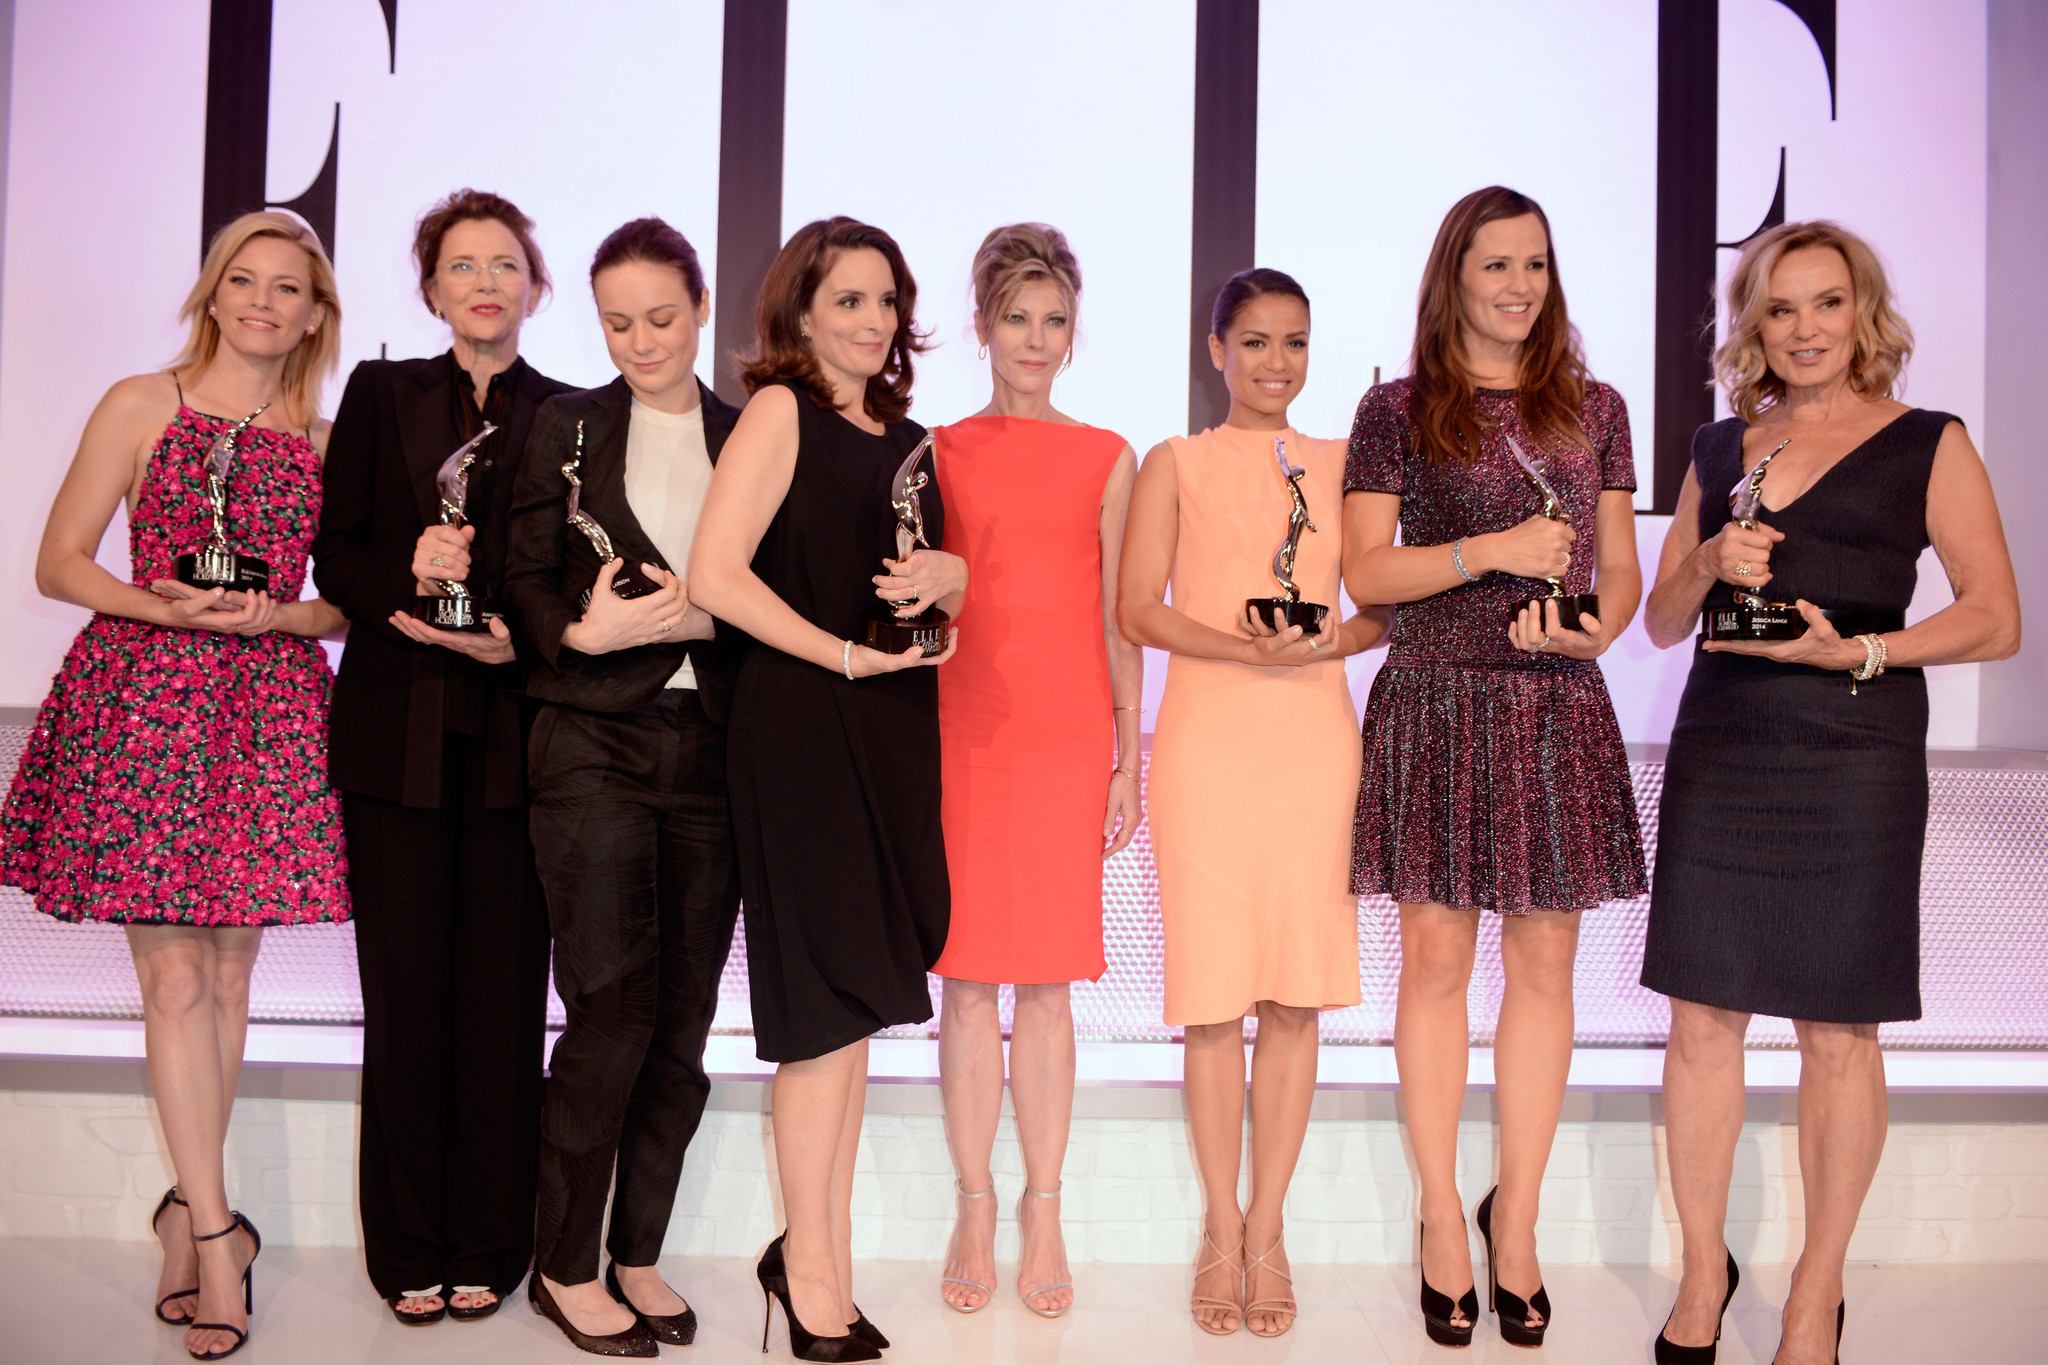 Elle Women in Hollywood Awards honor Garner, Fey, Banks, Bening, Lange